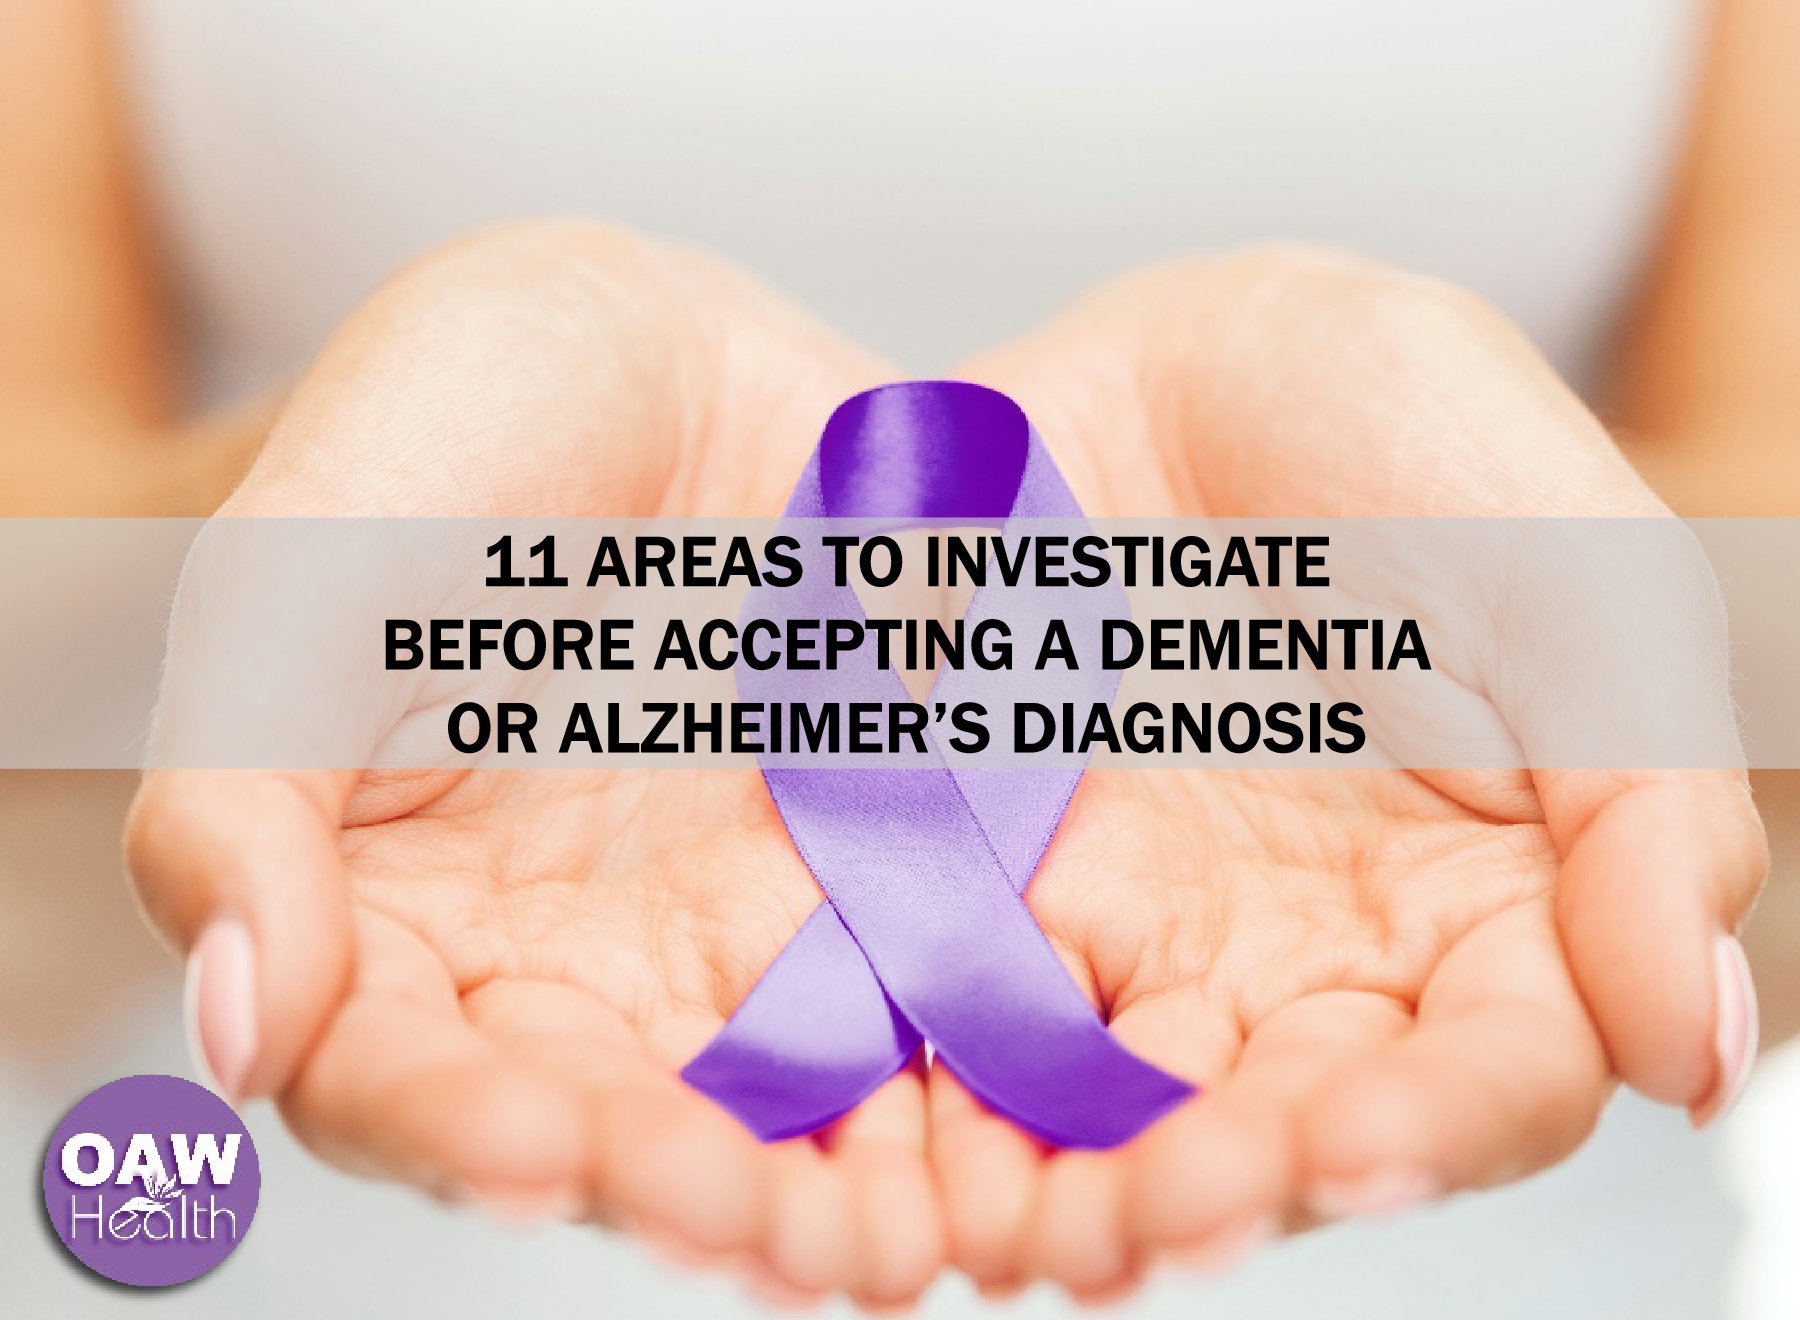 11 Areas to Investigate before Accepting a Dementia or Alzheimer's Diagnosis